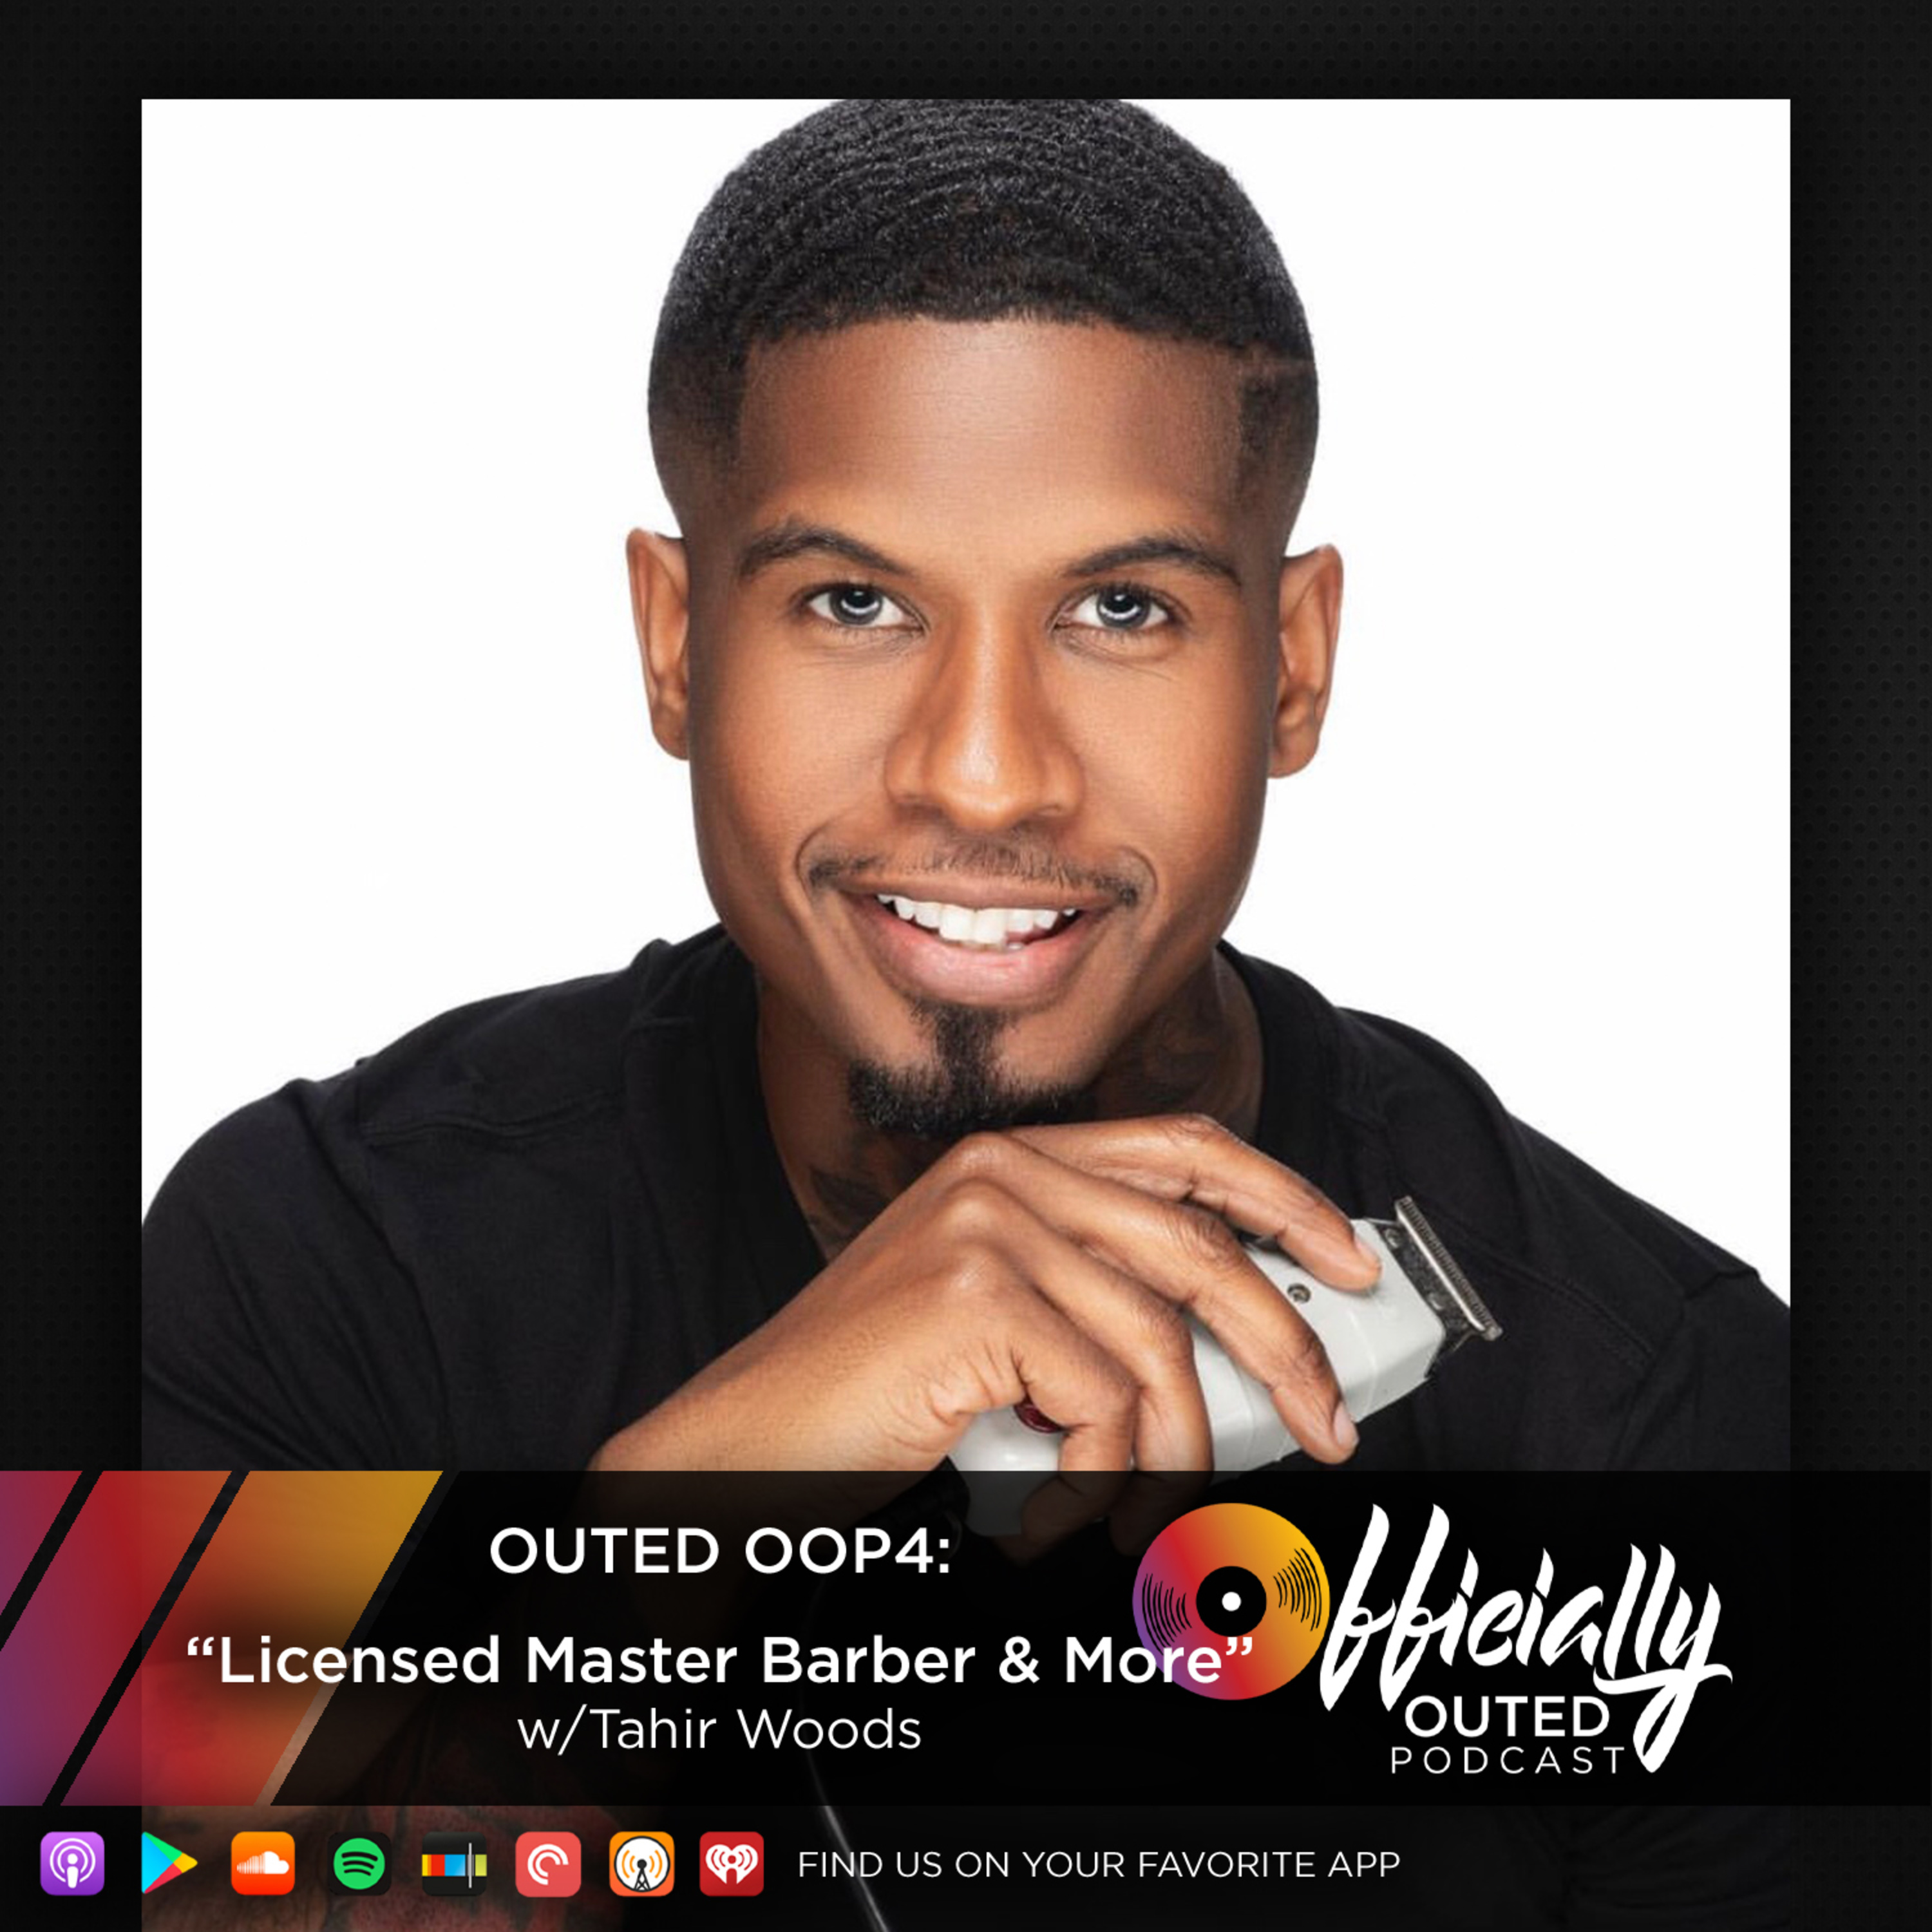 Outed Oop4 The Grooming Quarters Featuring Tahir Woods Officially Outed Podcast Lyssna Har Poddtoppen Se